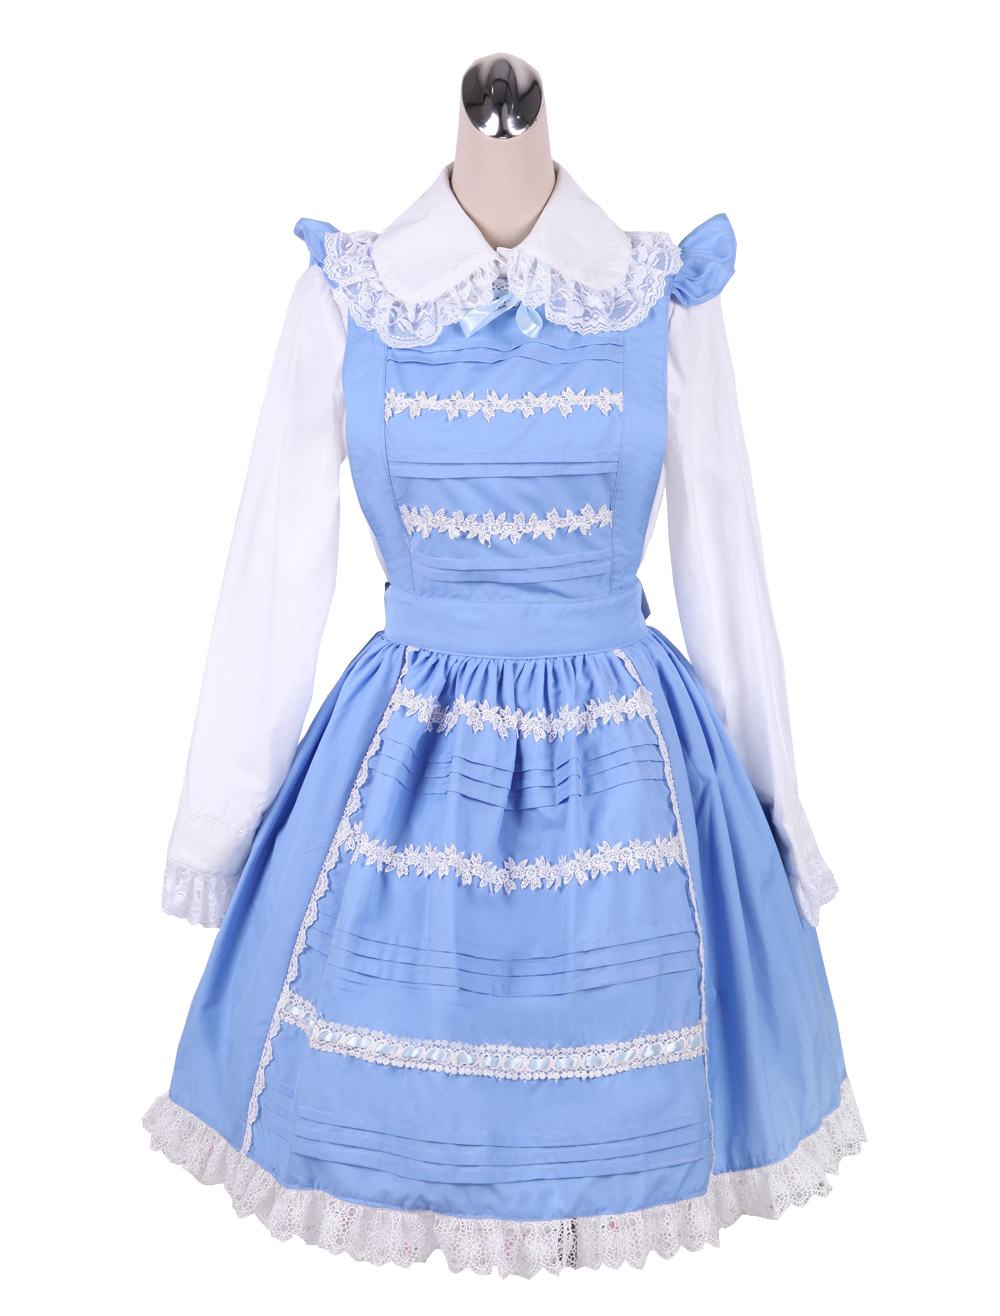 Primary image for ZeroMart Blue Cotton Lapel Maid Cosplay Cute Vintage Victorian Lolita Dress